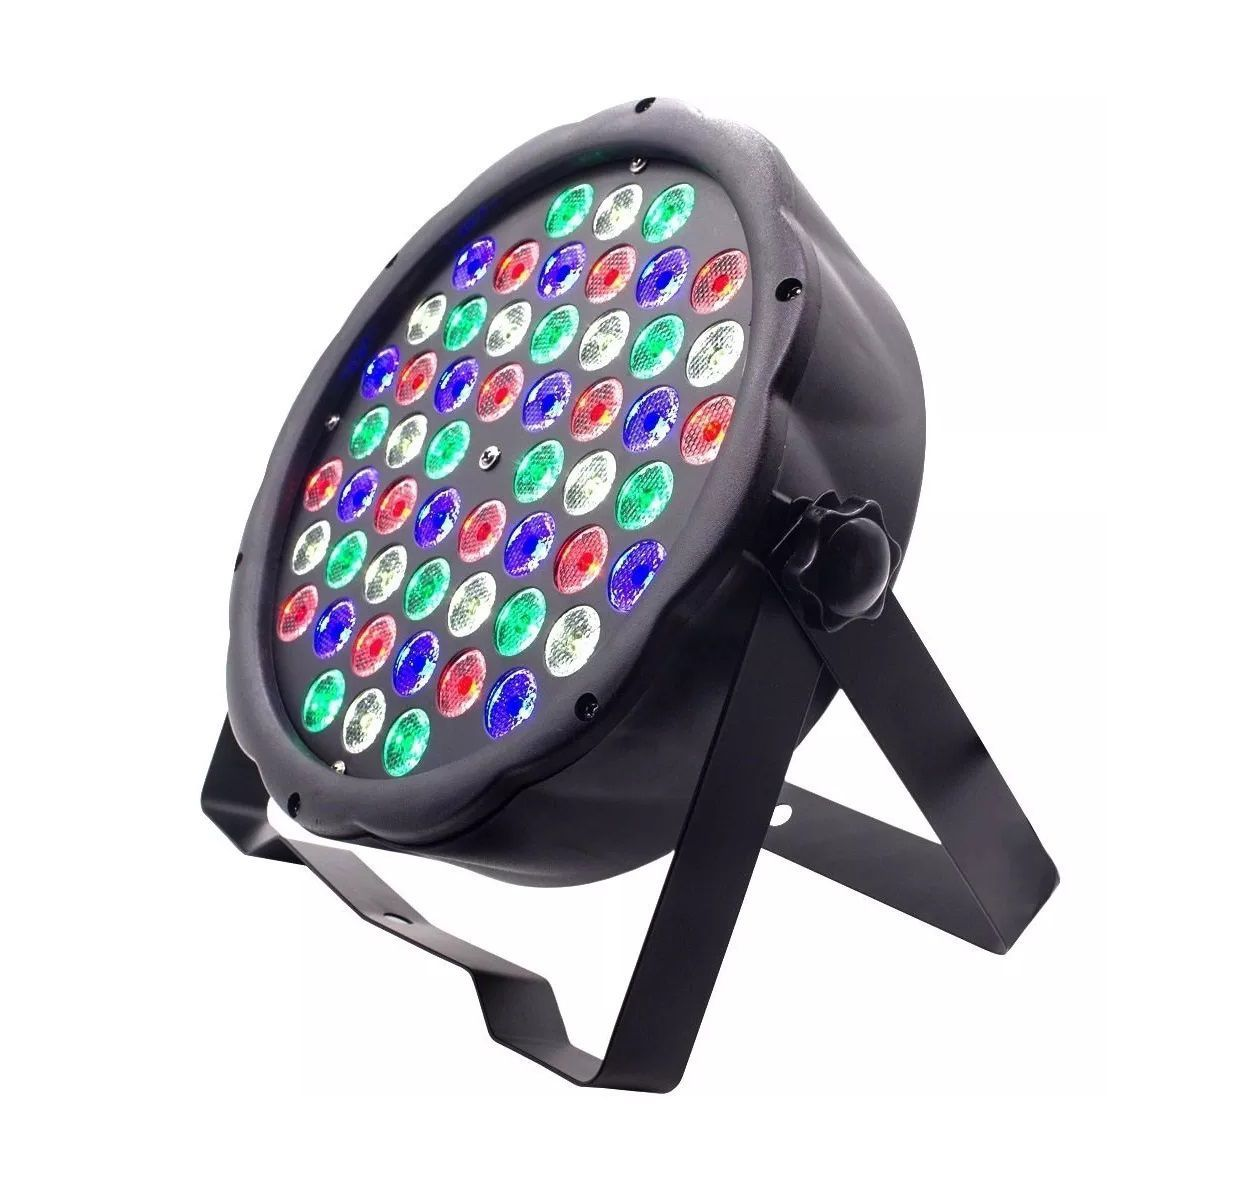 Kit 5x Canhão de Luz Led Par 64 RBGW 54 Leds 3w Strobo Dmx Digital